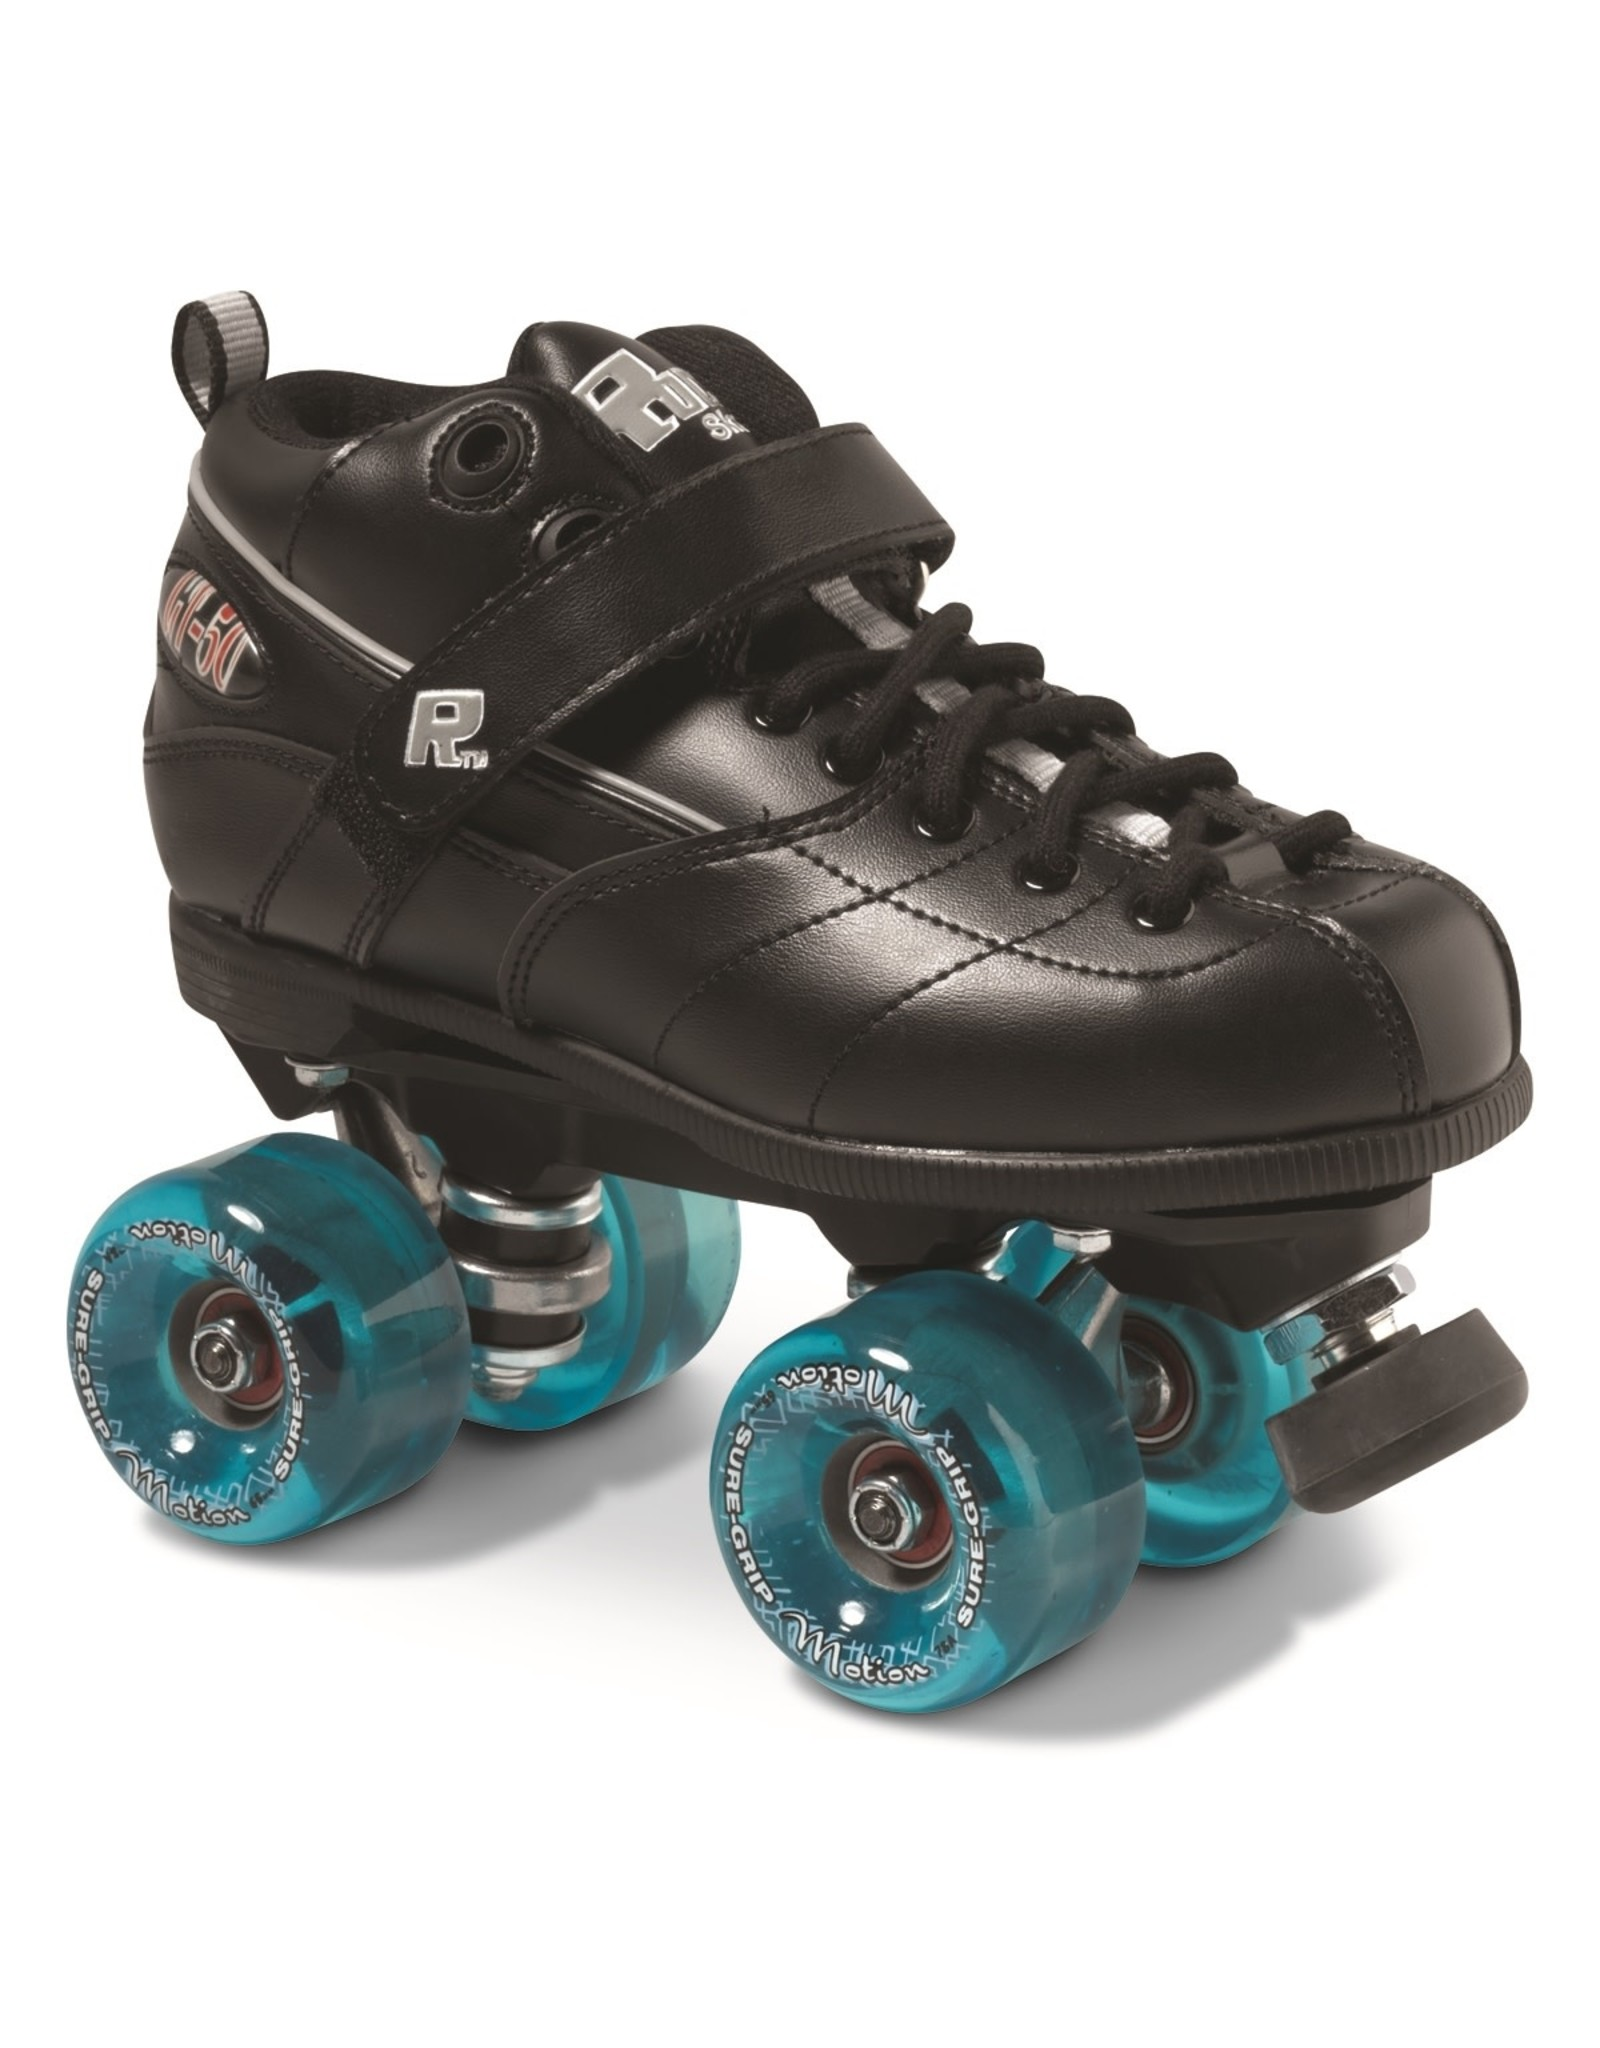 Sure Grip GT50 Motion Outdoor Skate